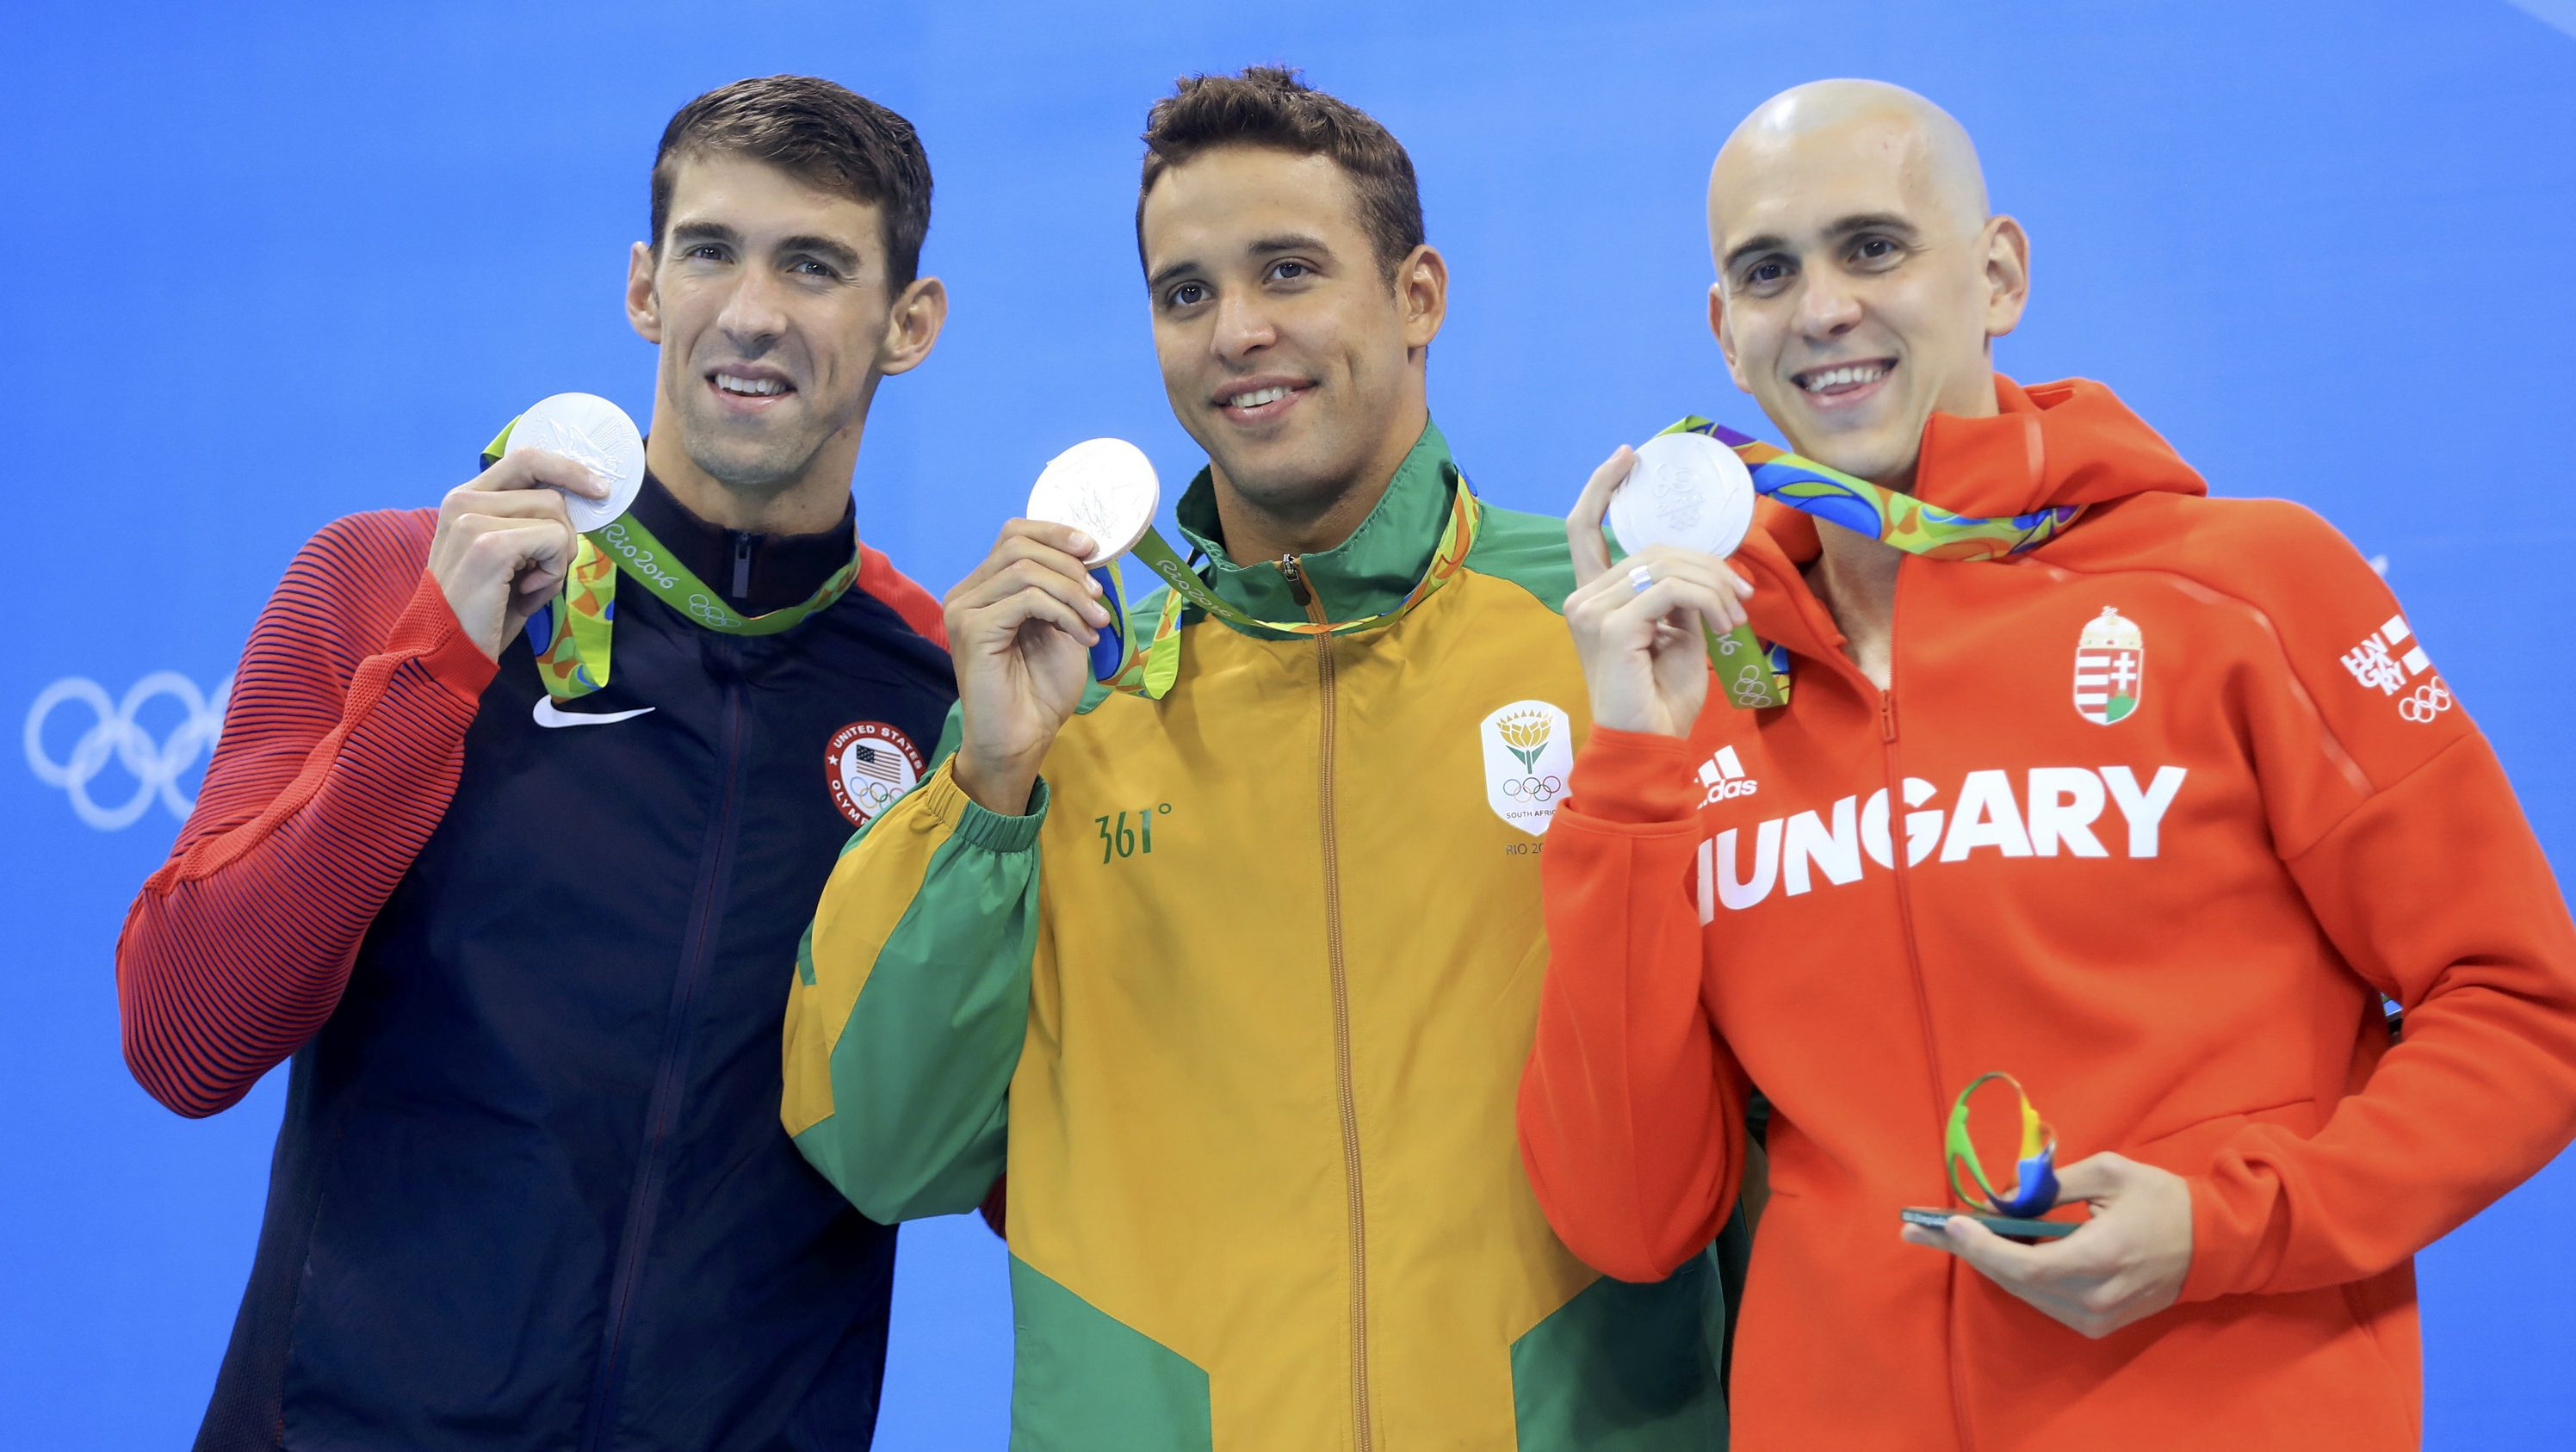 2016 Rio Olympics - Swimming - Victory Ceremony - Men's 100m Butterfly Victory Ceremony - Olympic Aquatics Stadium - Rio de Janeiro, Brazil - 12/08/2016. Joint silver medallists Michael Phelps (USA) of USA, Chad Le Clos (RSA) of South Africa and Laszlo Cseh (HUN) of Hungary pose for a photo.   REUTERS/Dominic Ebenbichler  FOR EDITORIAL USE ONLY. NOT FOR SALE FOR MARKETING OR ADVERTISING CAMPAIGNS.   - RTX2KGBI